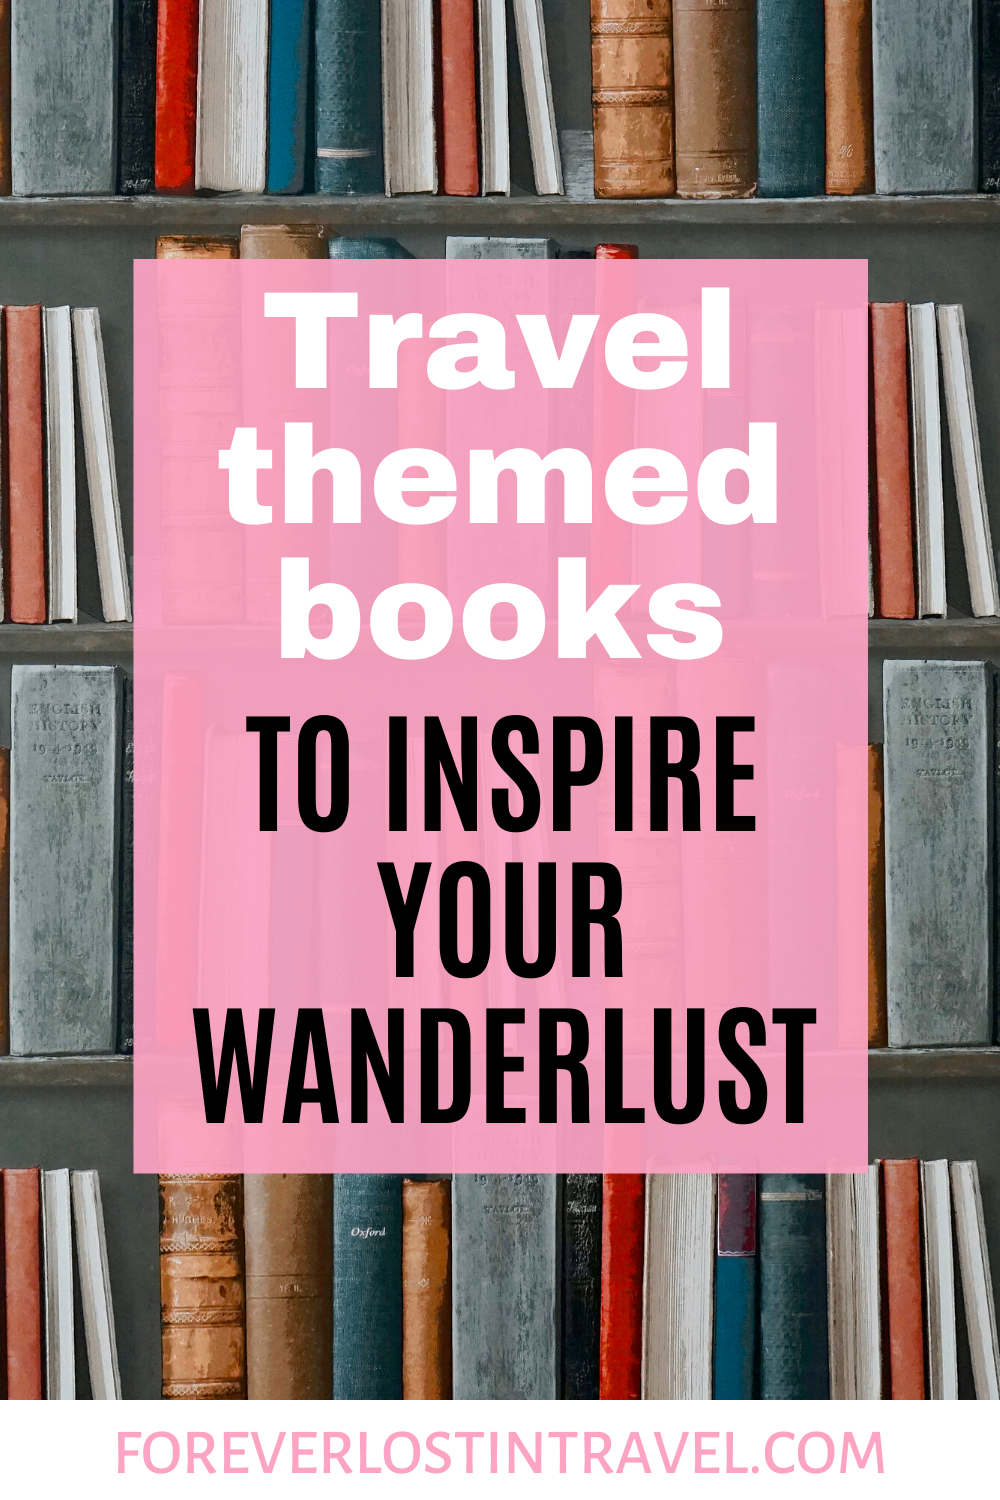 Love to read? Love to travel? Combine your two favorite things with these 8 amazing books that will help you get lost in another world even while you're still at home. Fictional stories and true life stories, these travel themed books will set your wanderlust to overdrive #travel #travelbooks #mustreadbooks #wanderlust #travelinspiration #athomeactivities #quarantinereads #socialdistancing